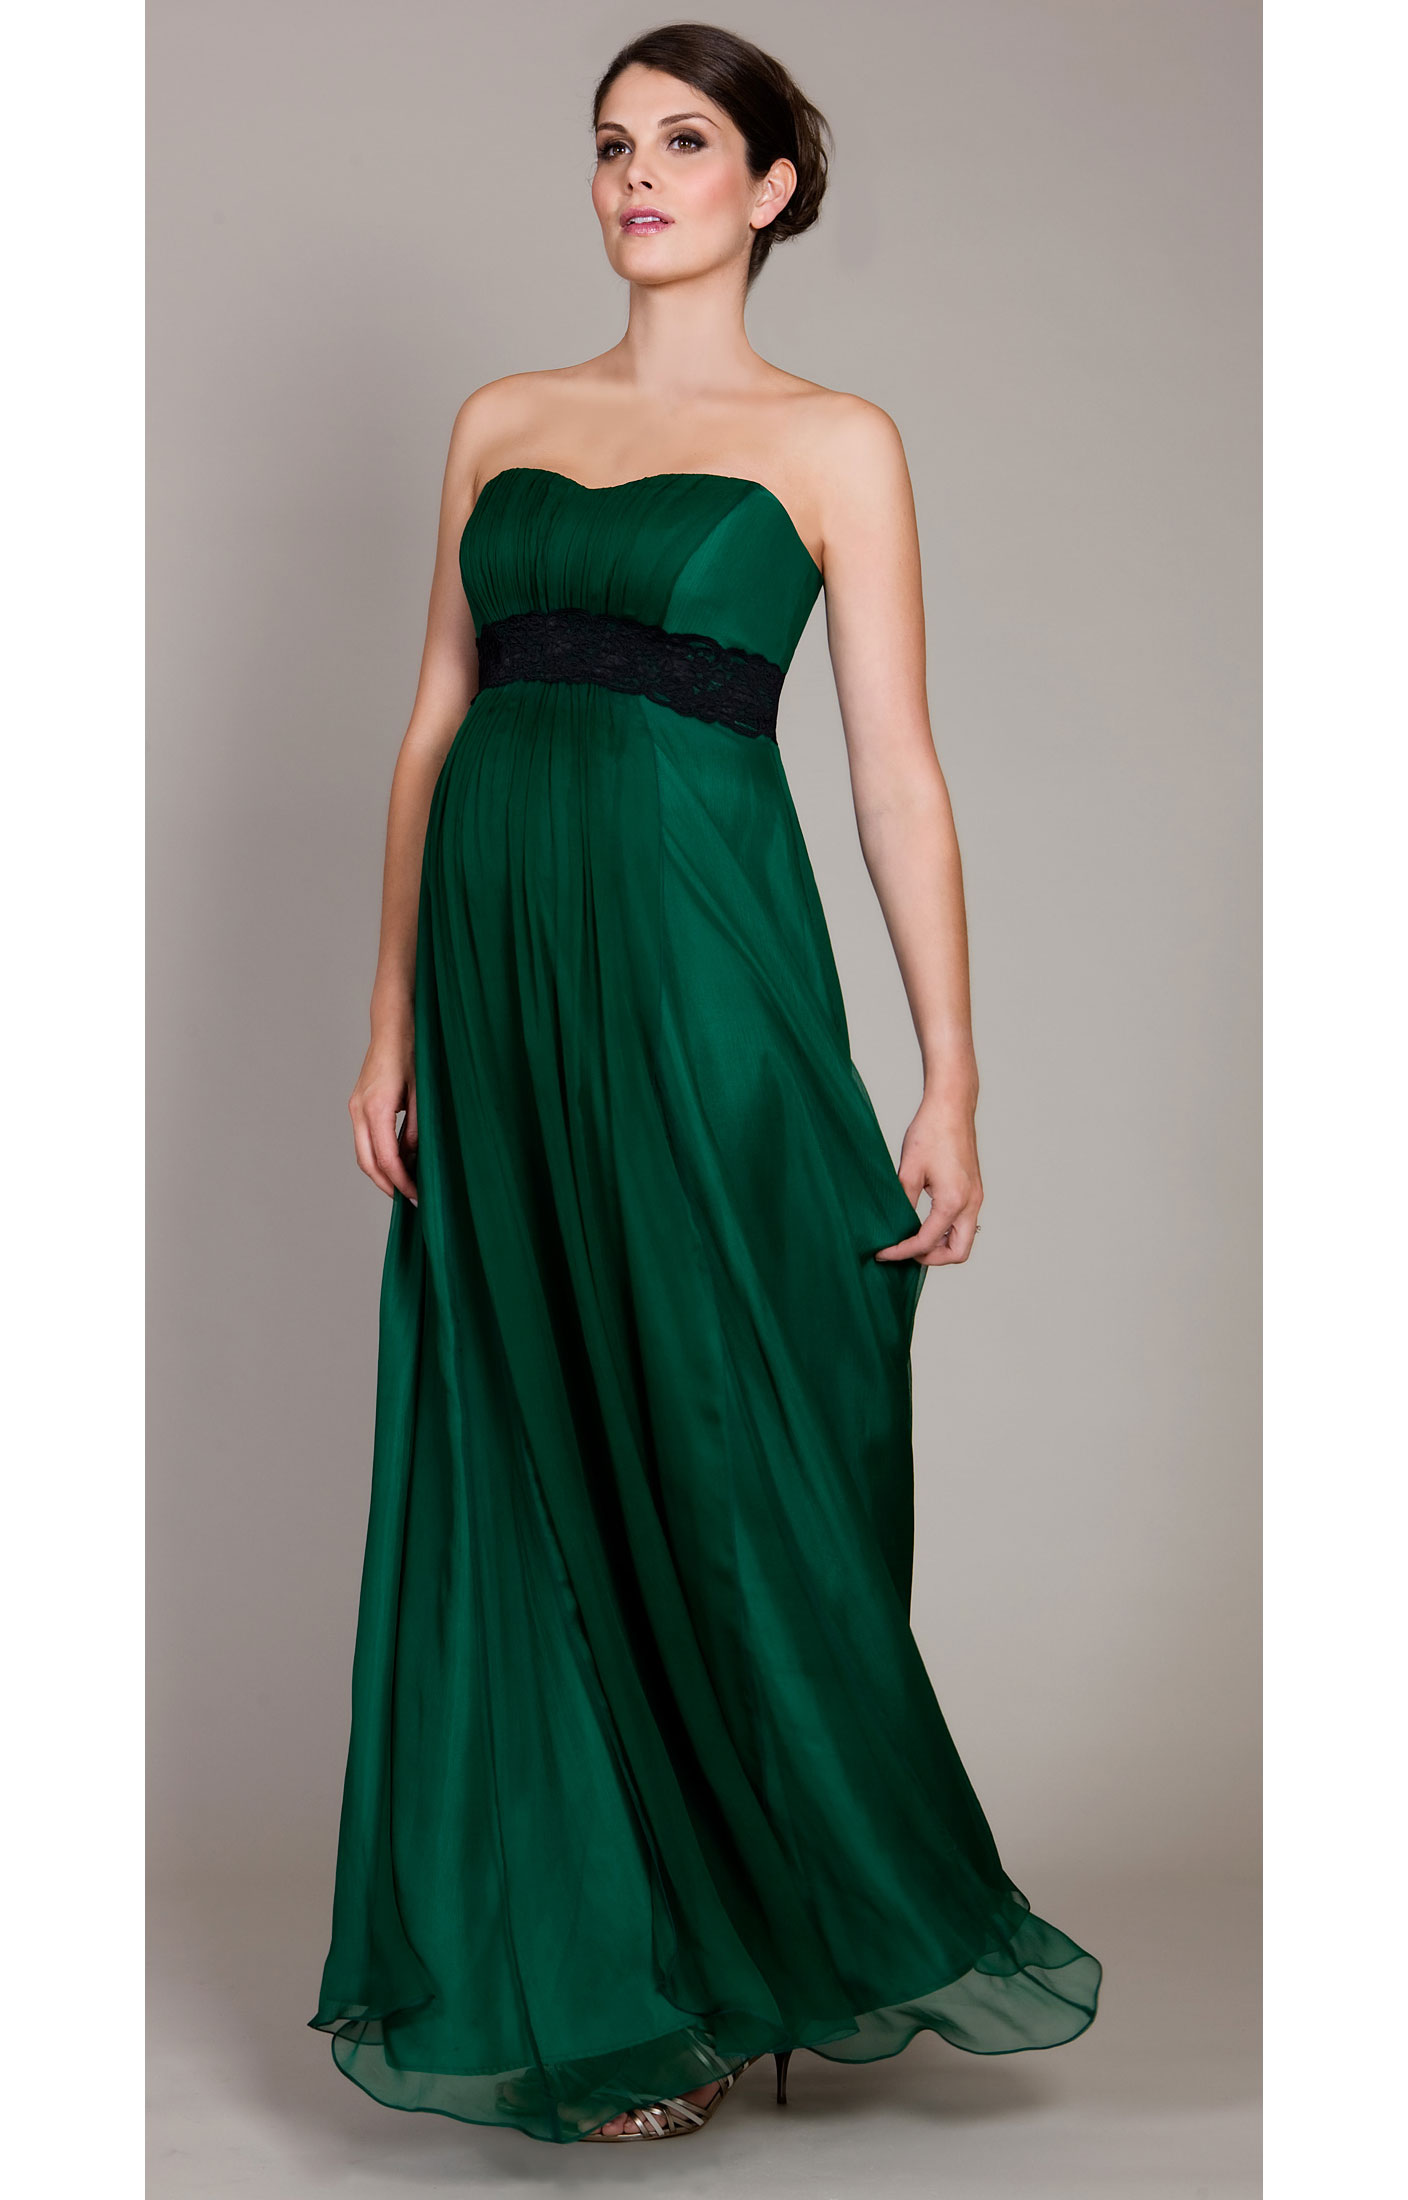 Emerald Green Dress With Black Lace - Fashion Week Collections